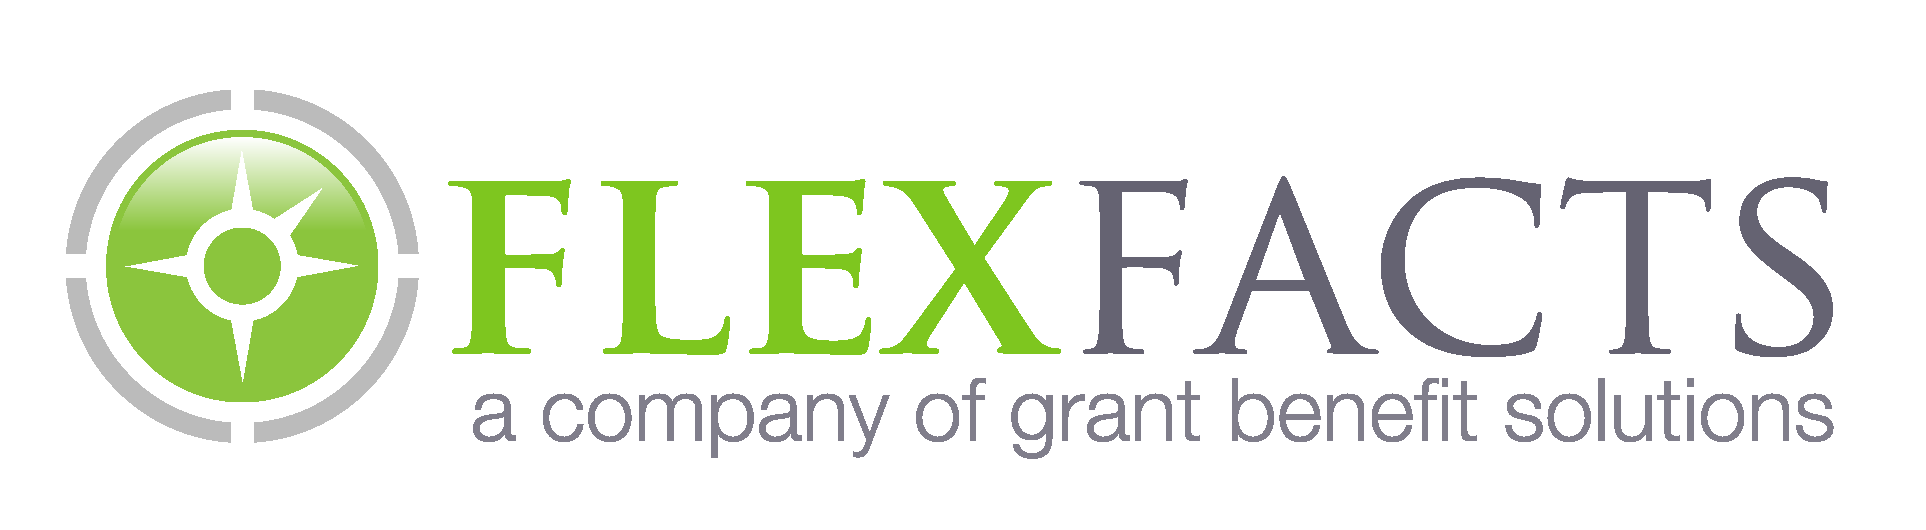 logo for flex facts